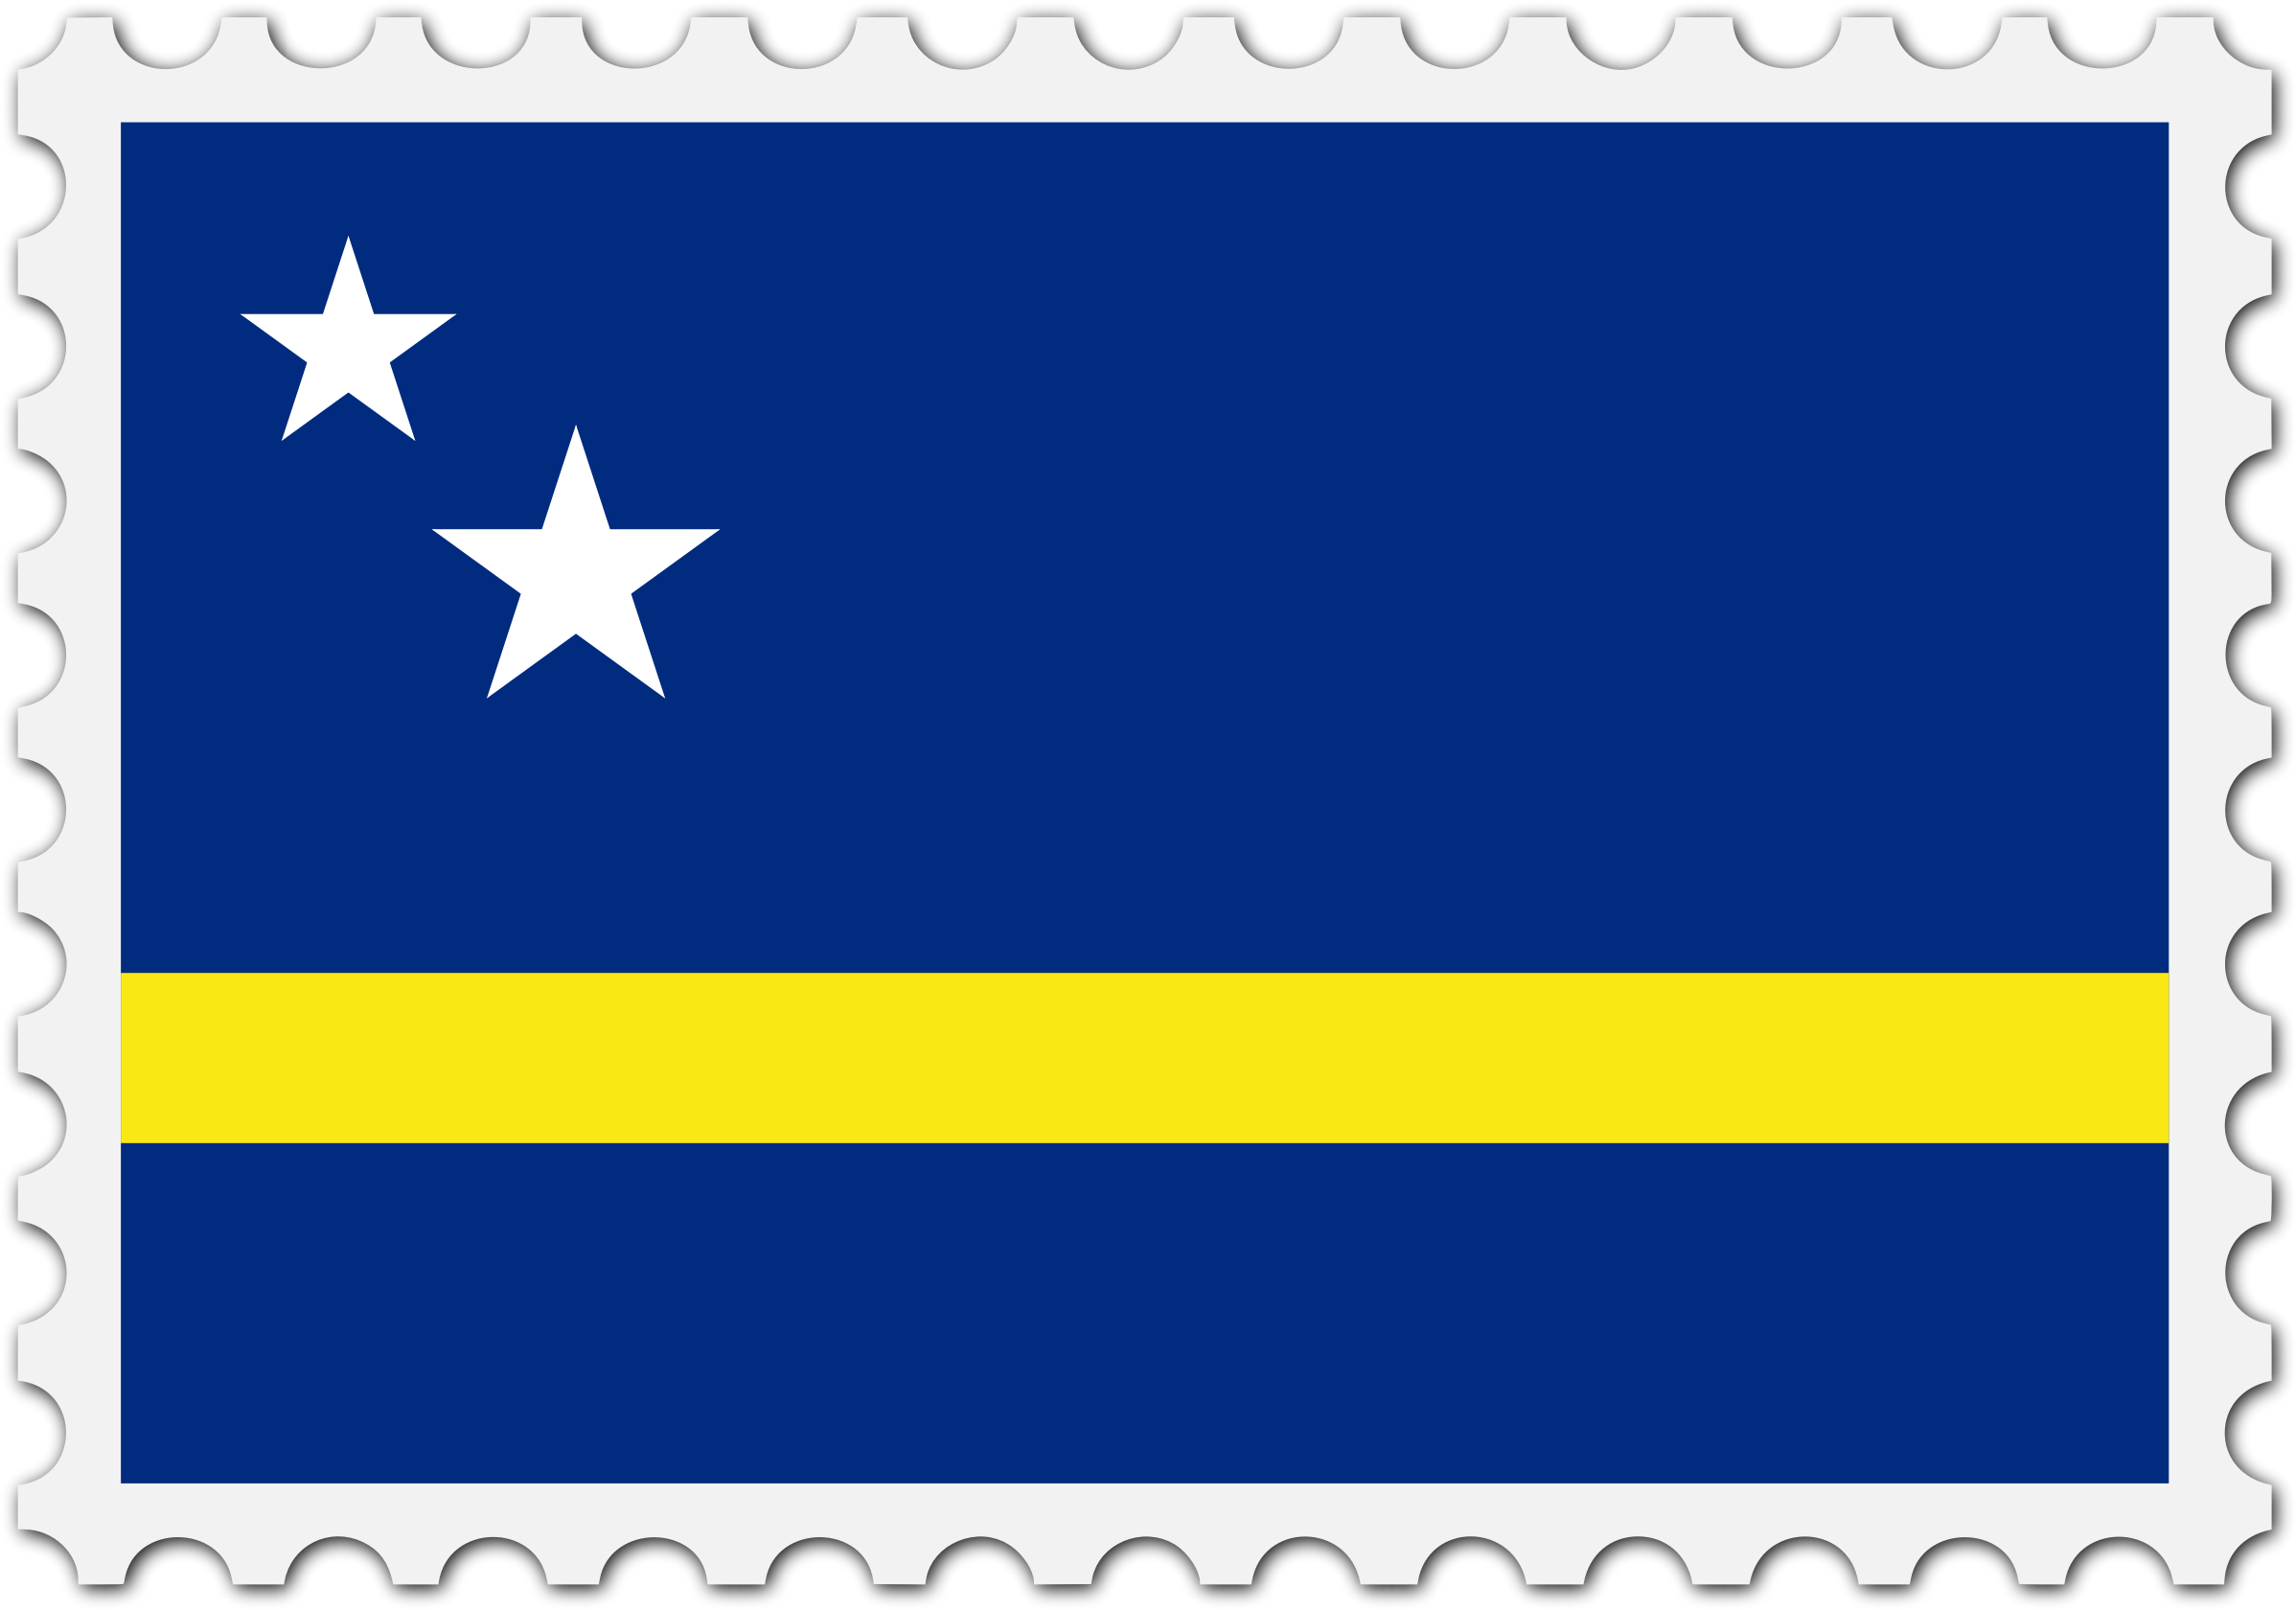 Curacao flag stamp by Firkin